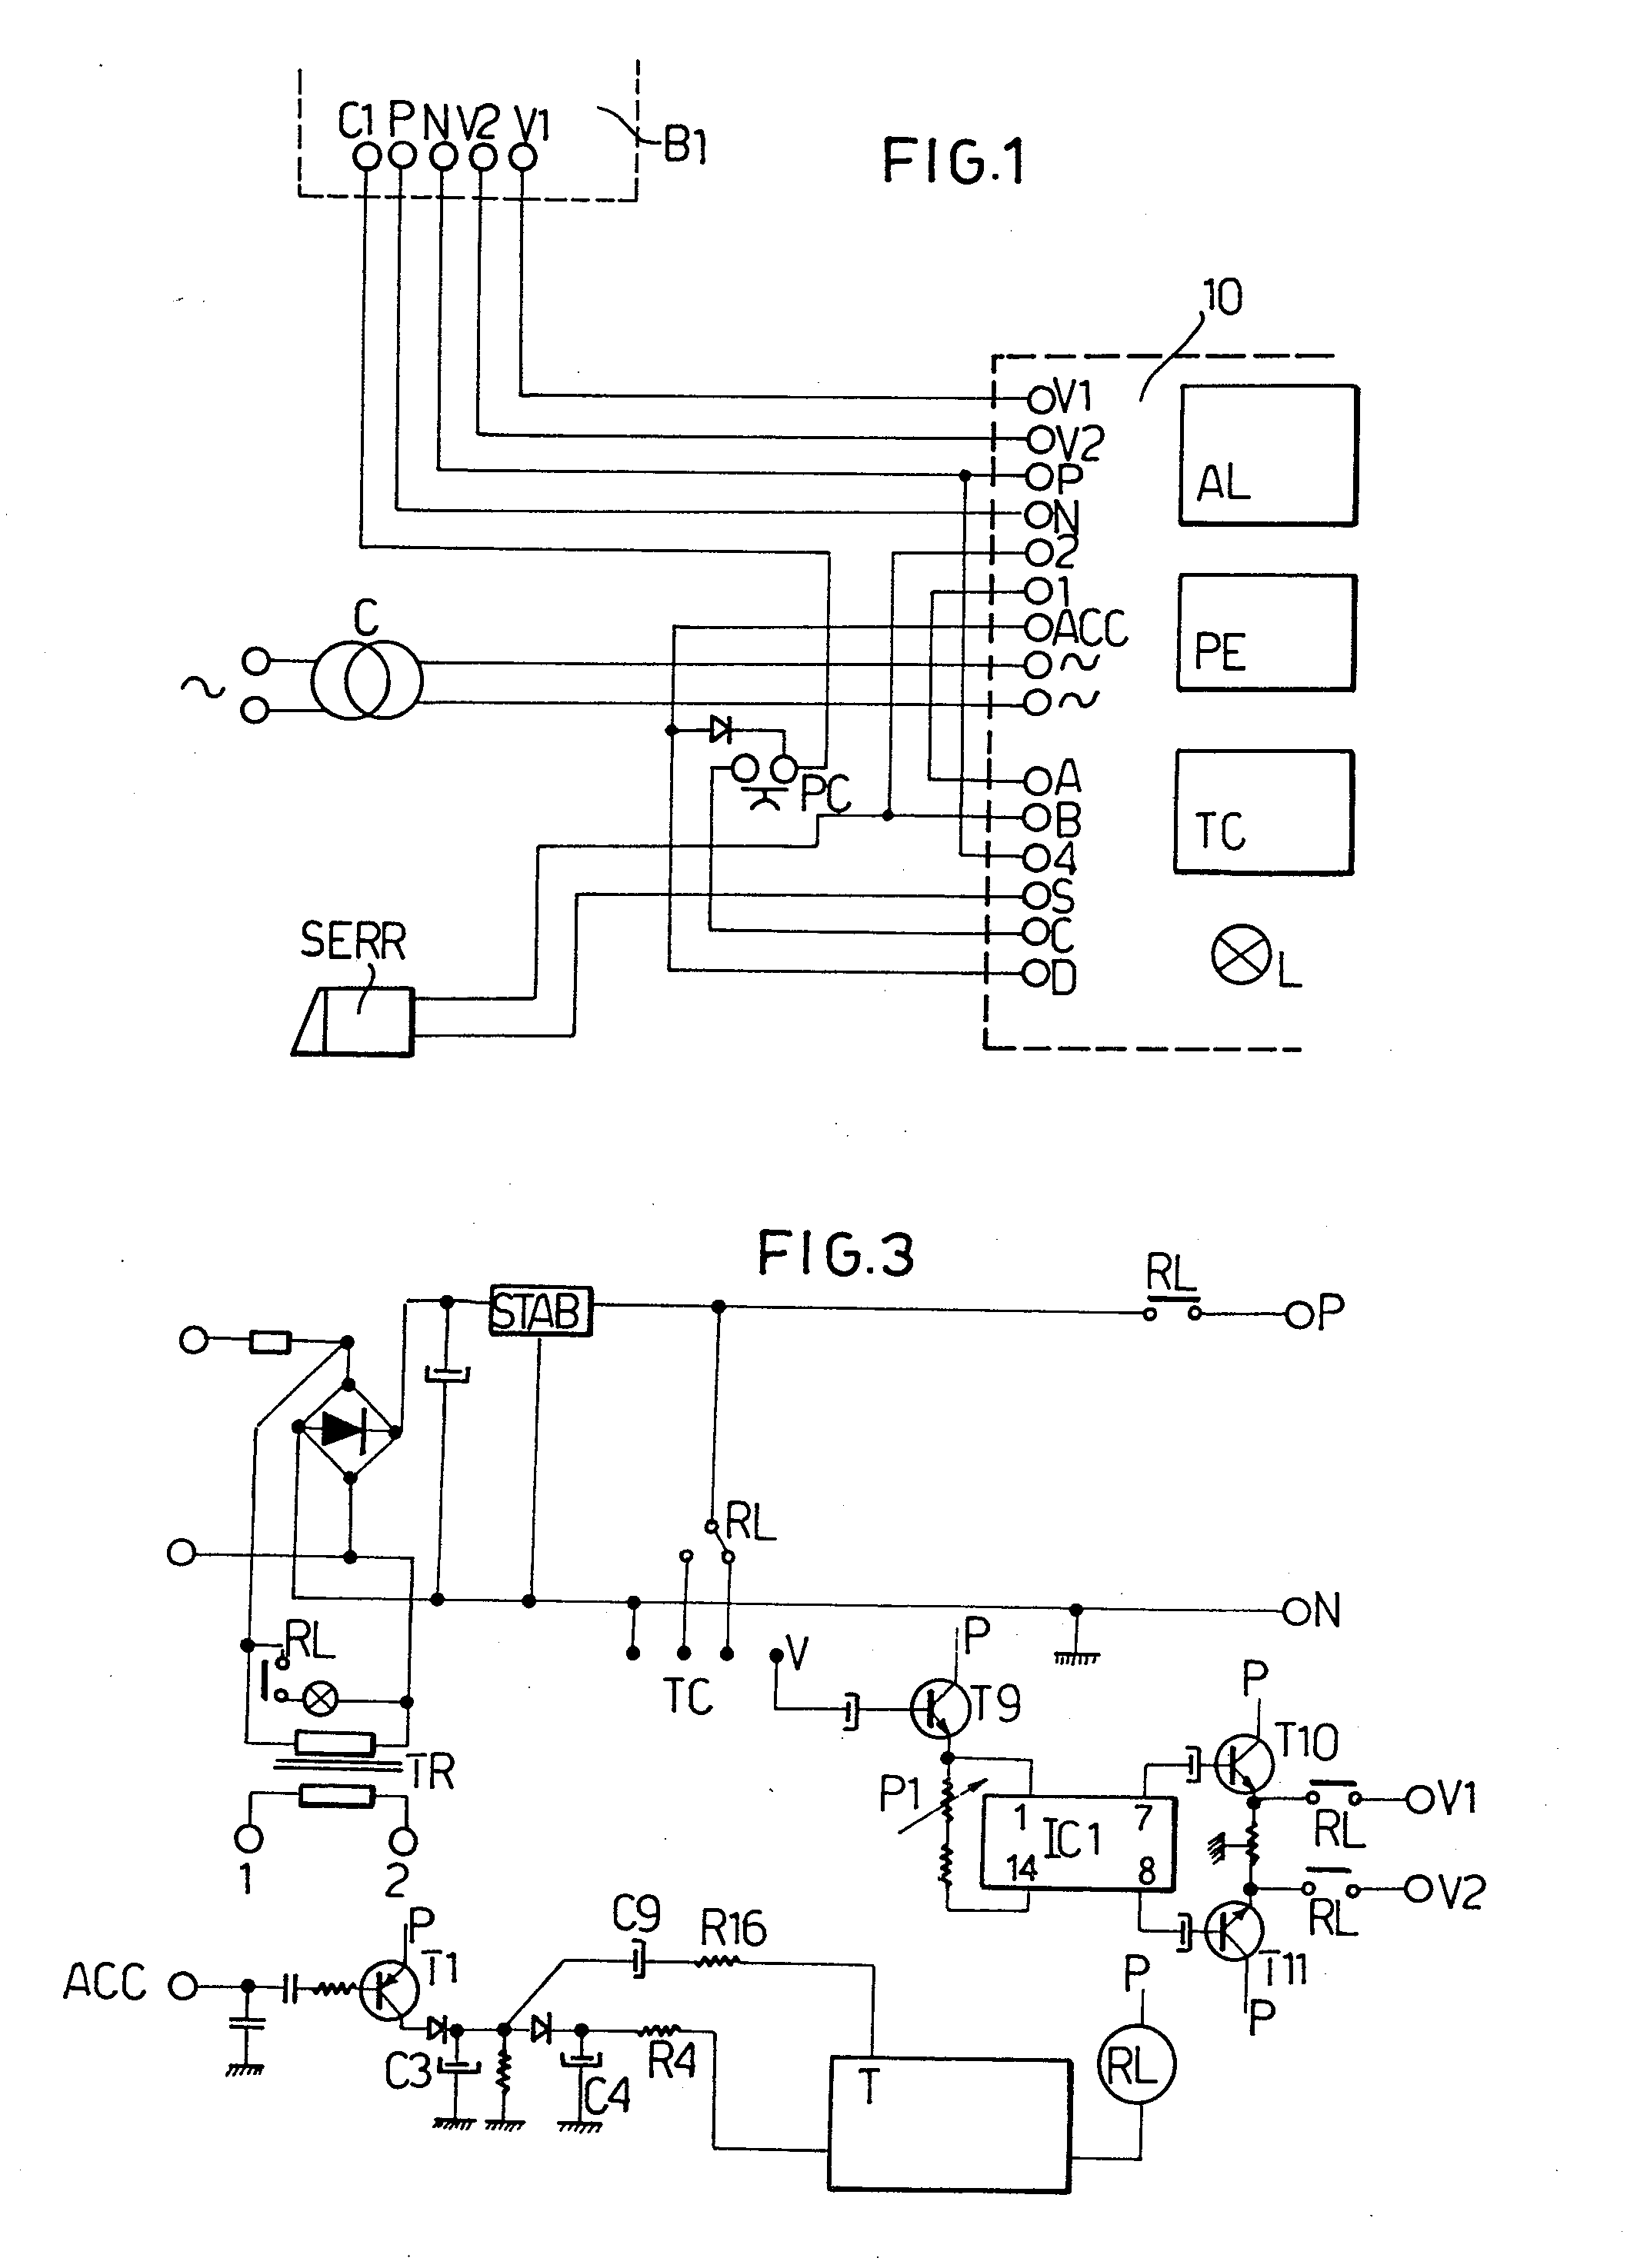 imgf0001 patent ep0121757a1 a method for processing useful signals in a comelit style 5 wiring diagram at bayanpartner.co